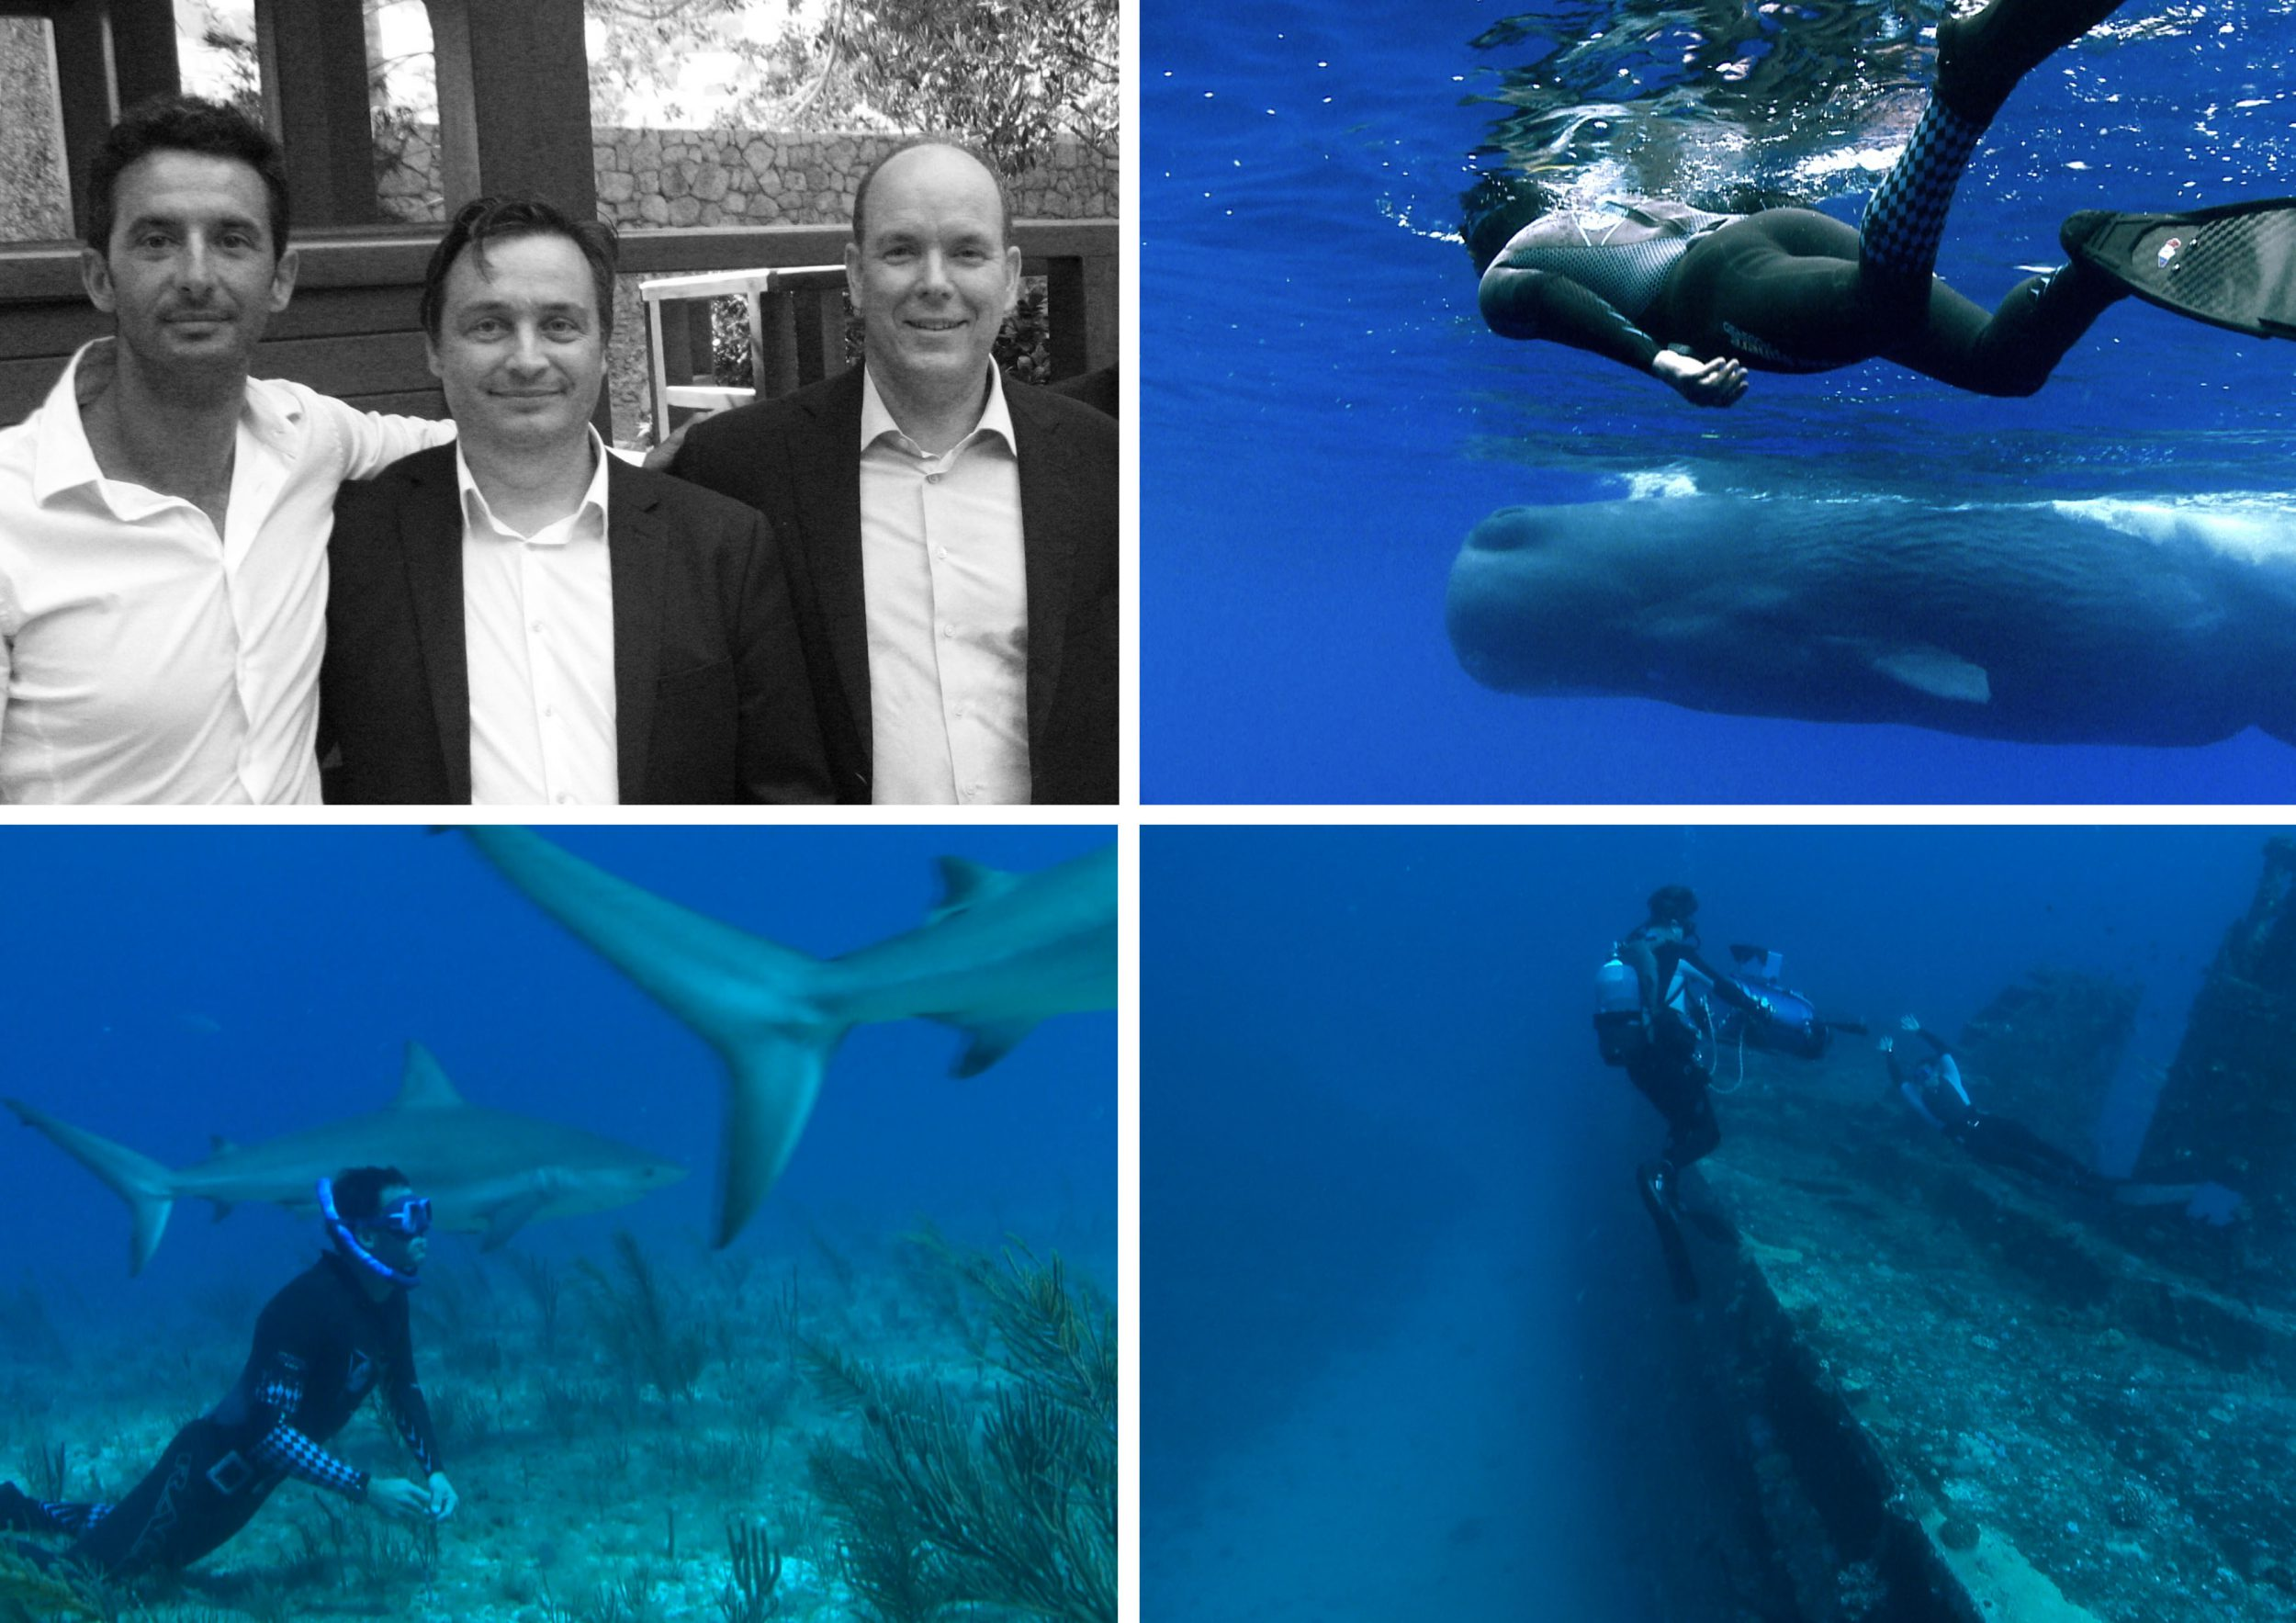 Clockwise from left: Pierre Frolla, Prince Albert and Philippe Gerard, swimming with whales, Pierre in his element with sharks, filming On A Long Breath